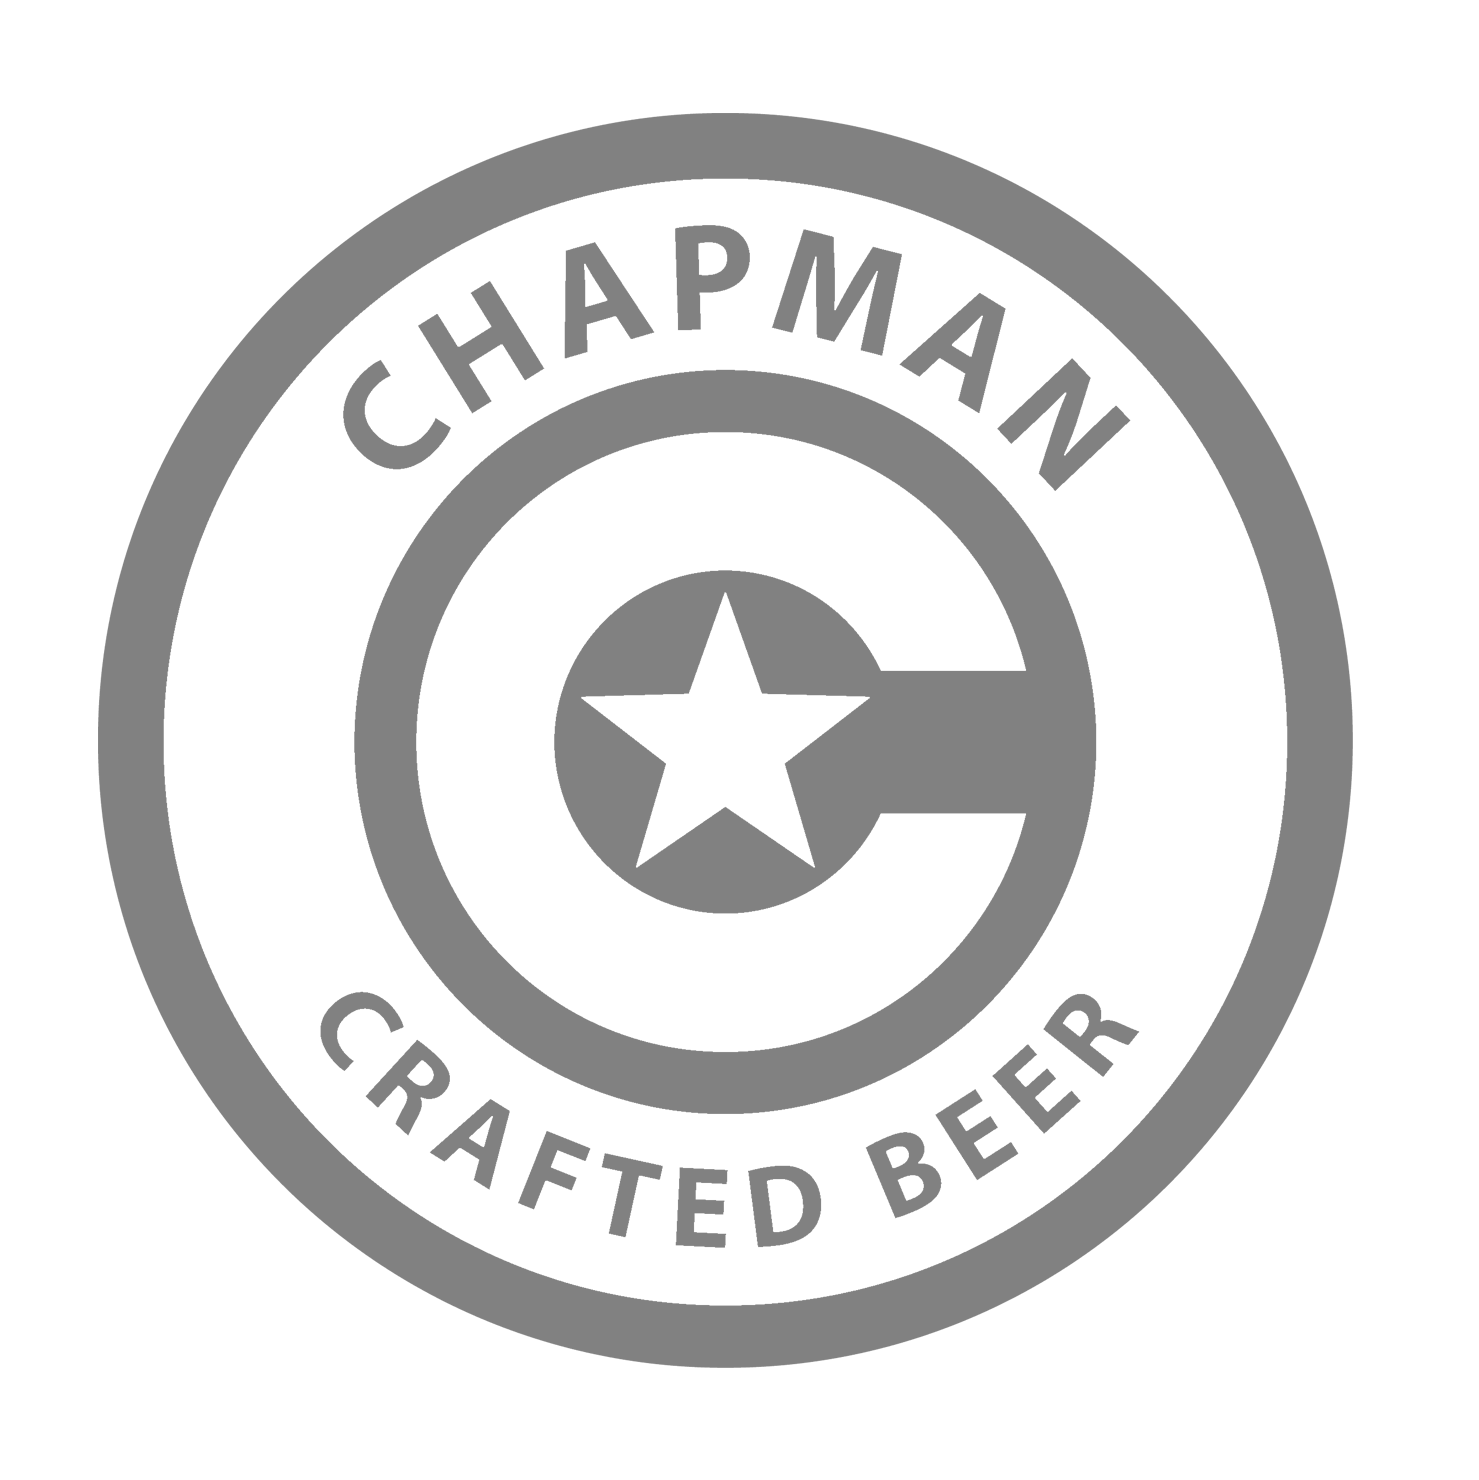 Chapman Crafted Beer_001.png